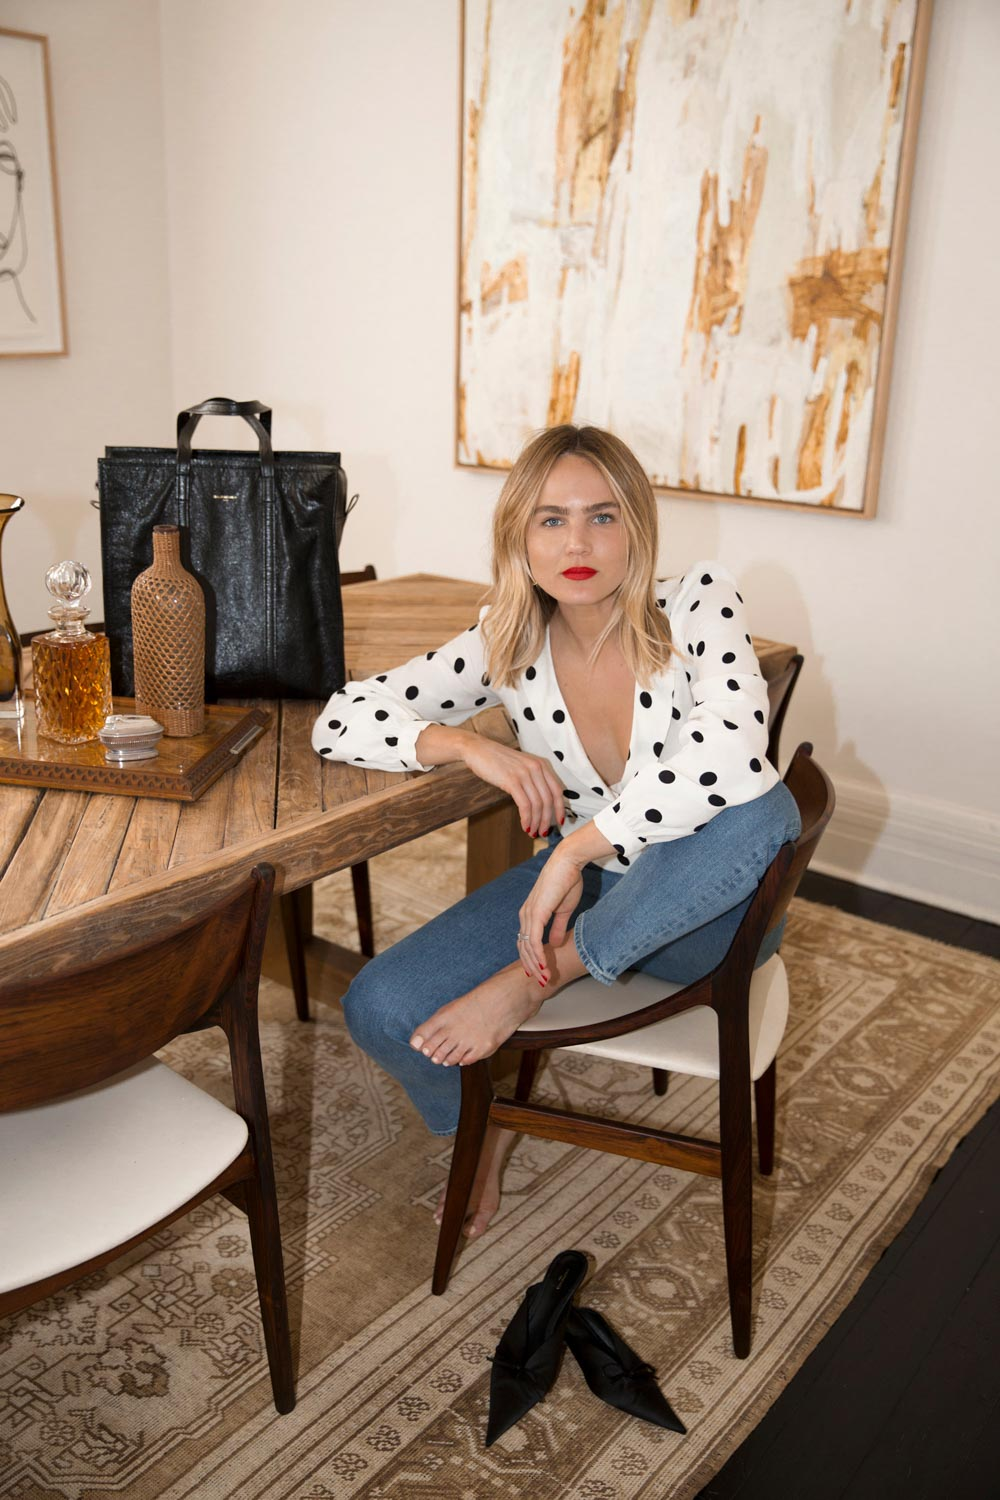 Steal Her Style: Polka Dots